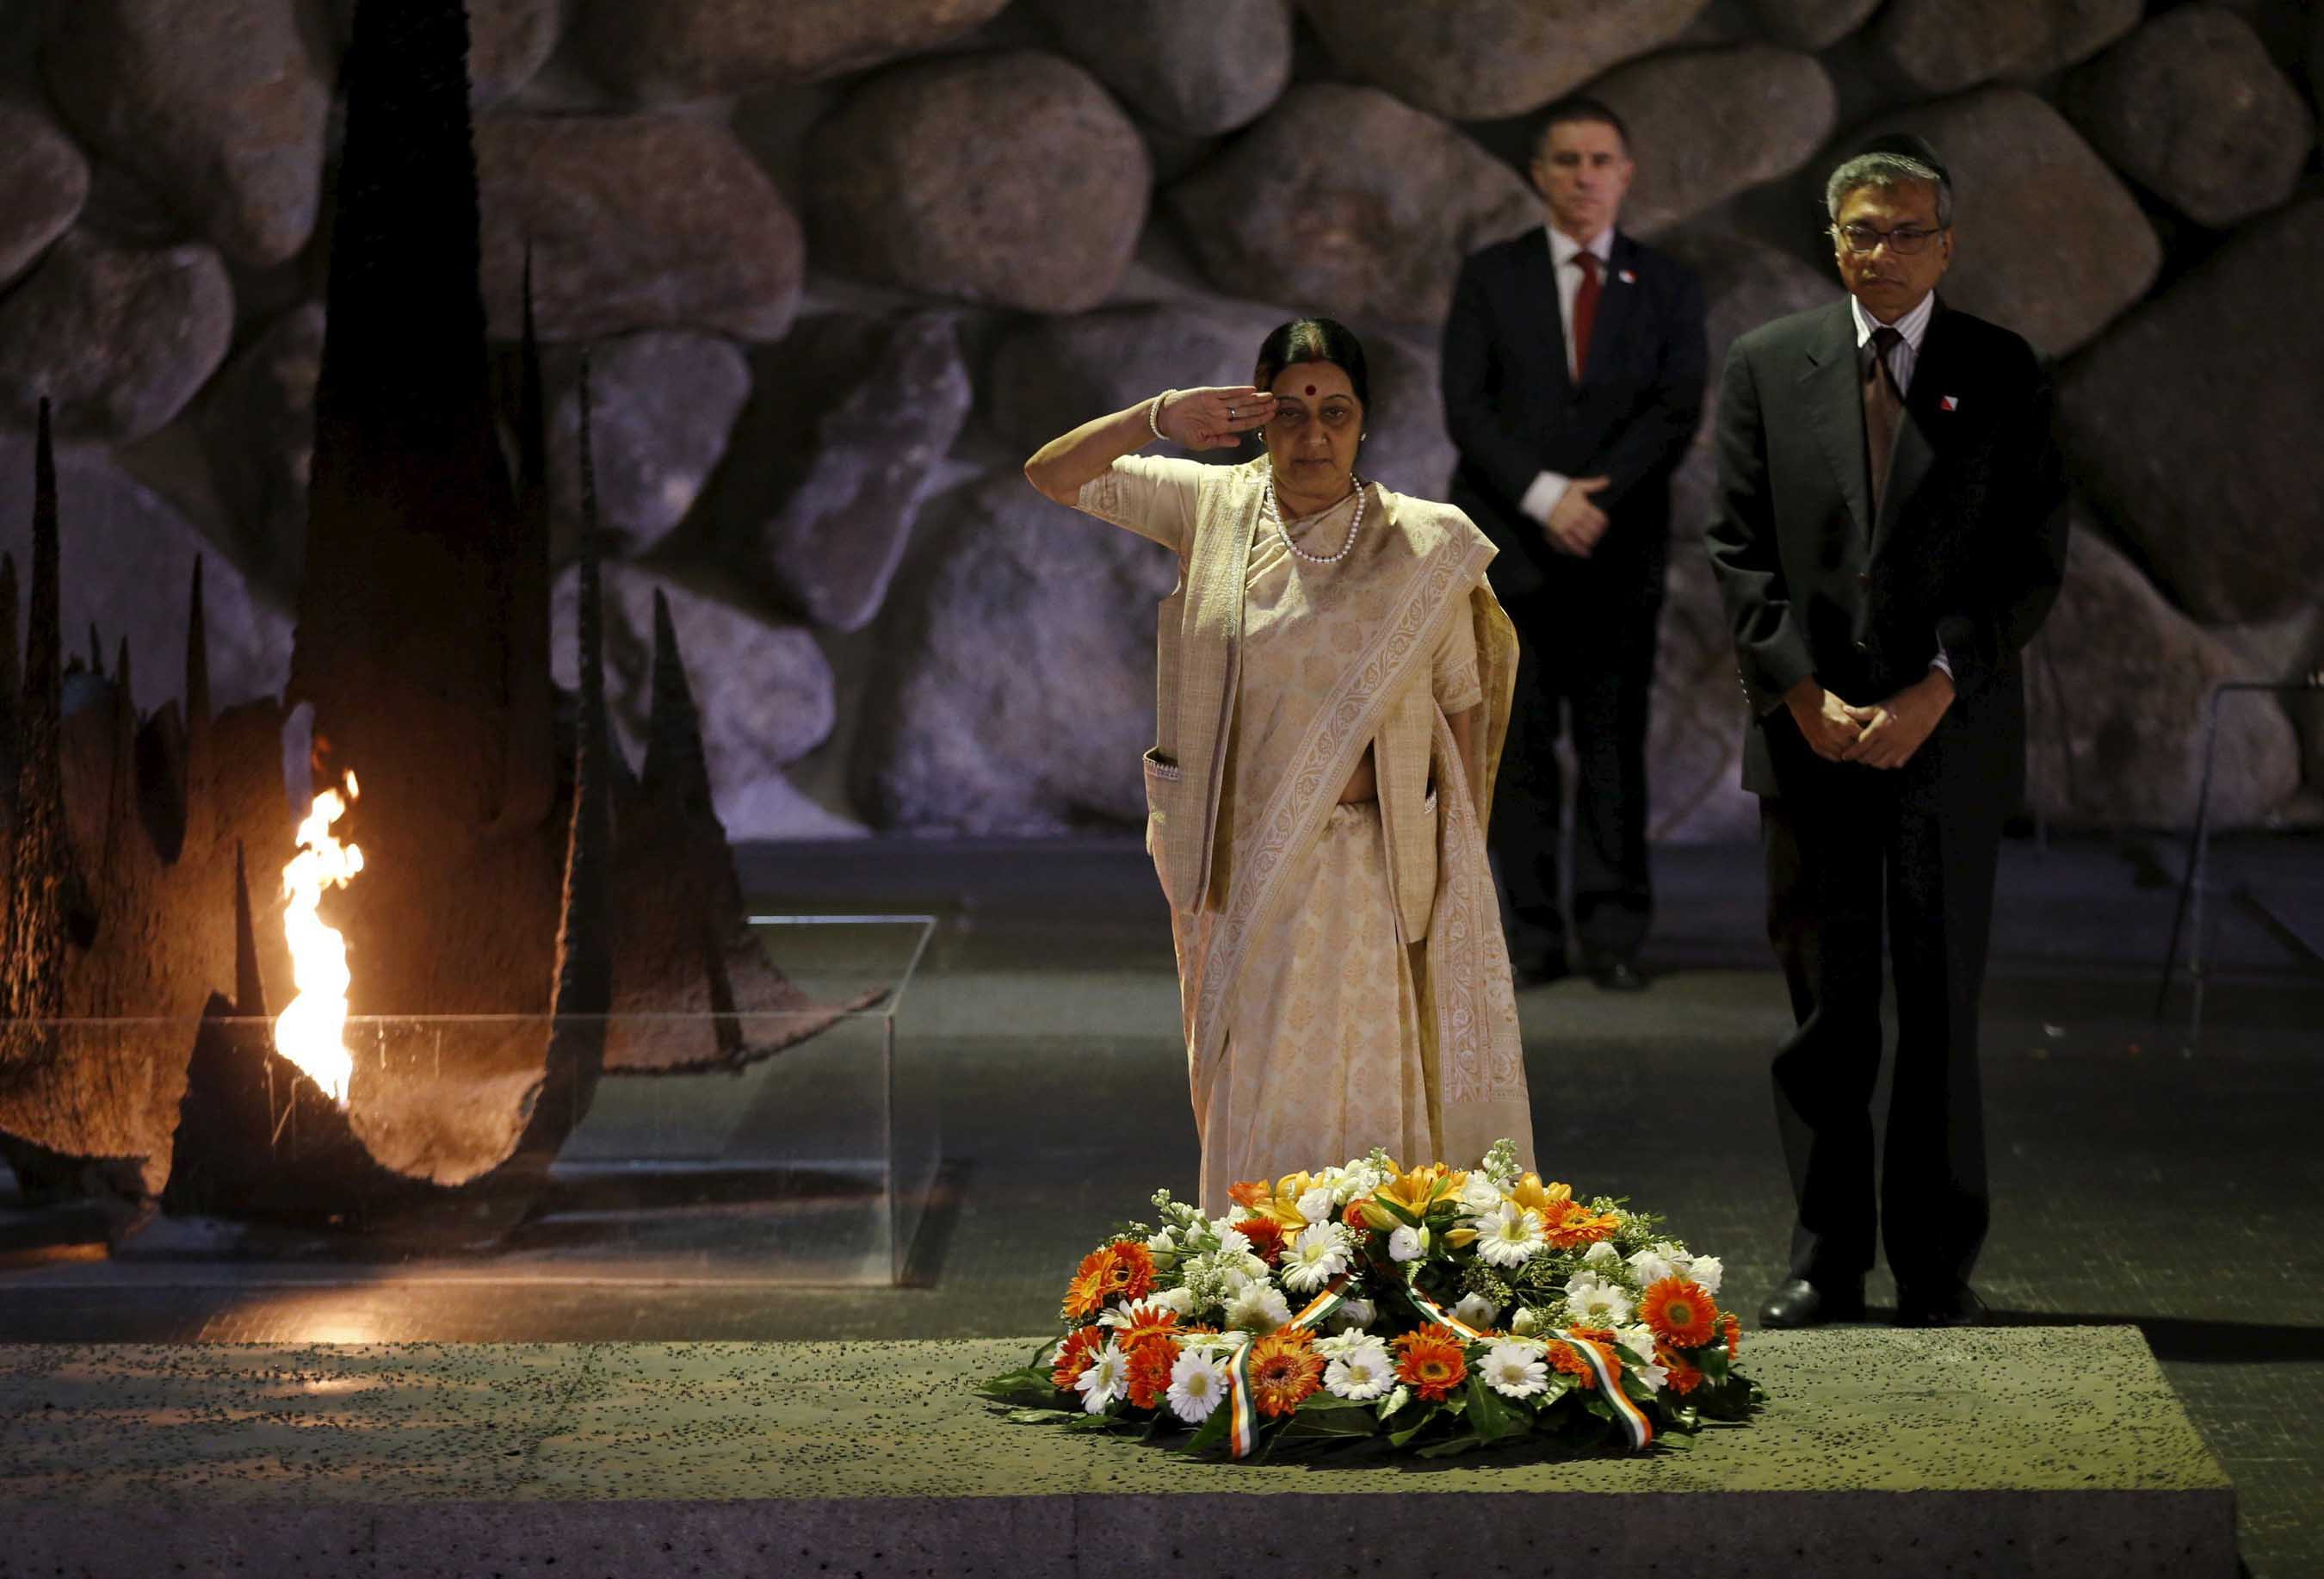 Indian Foreign Minister Sushma Swaraj observes a moment of silence after laying a wreath with Indian ambassador to Israel, Jaideep Sarkar , during a ceremony in the Hall of Remembrance at Yad Vashem Holocaust Memorial in Jerusalem January 18, 2016. (UNI)